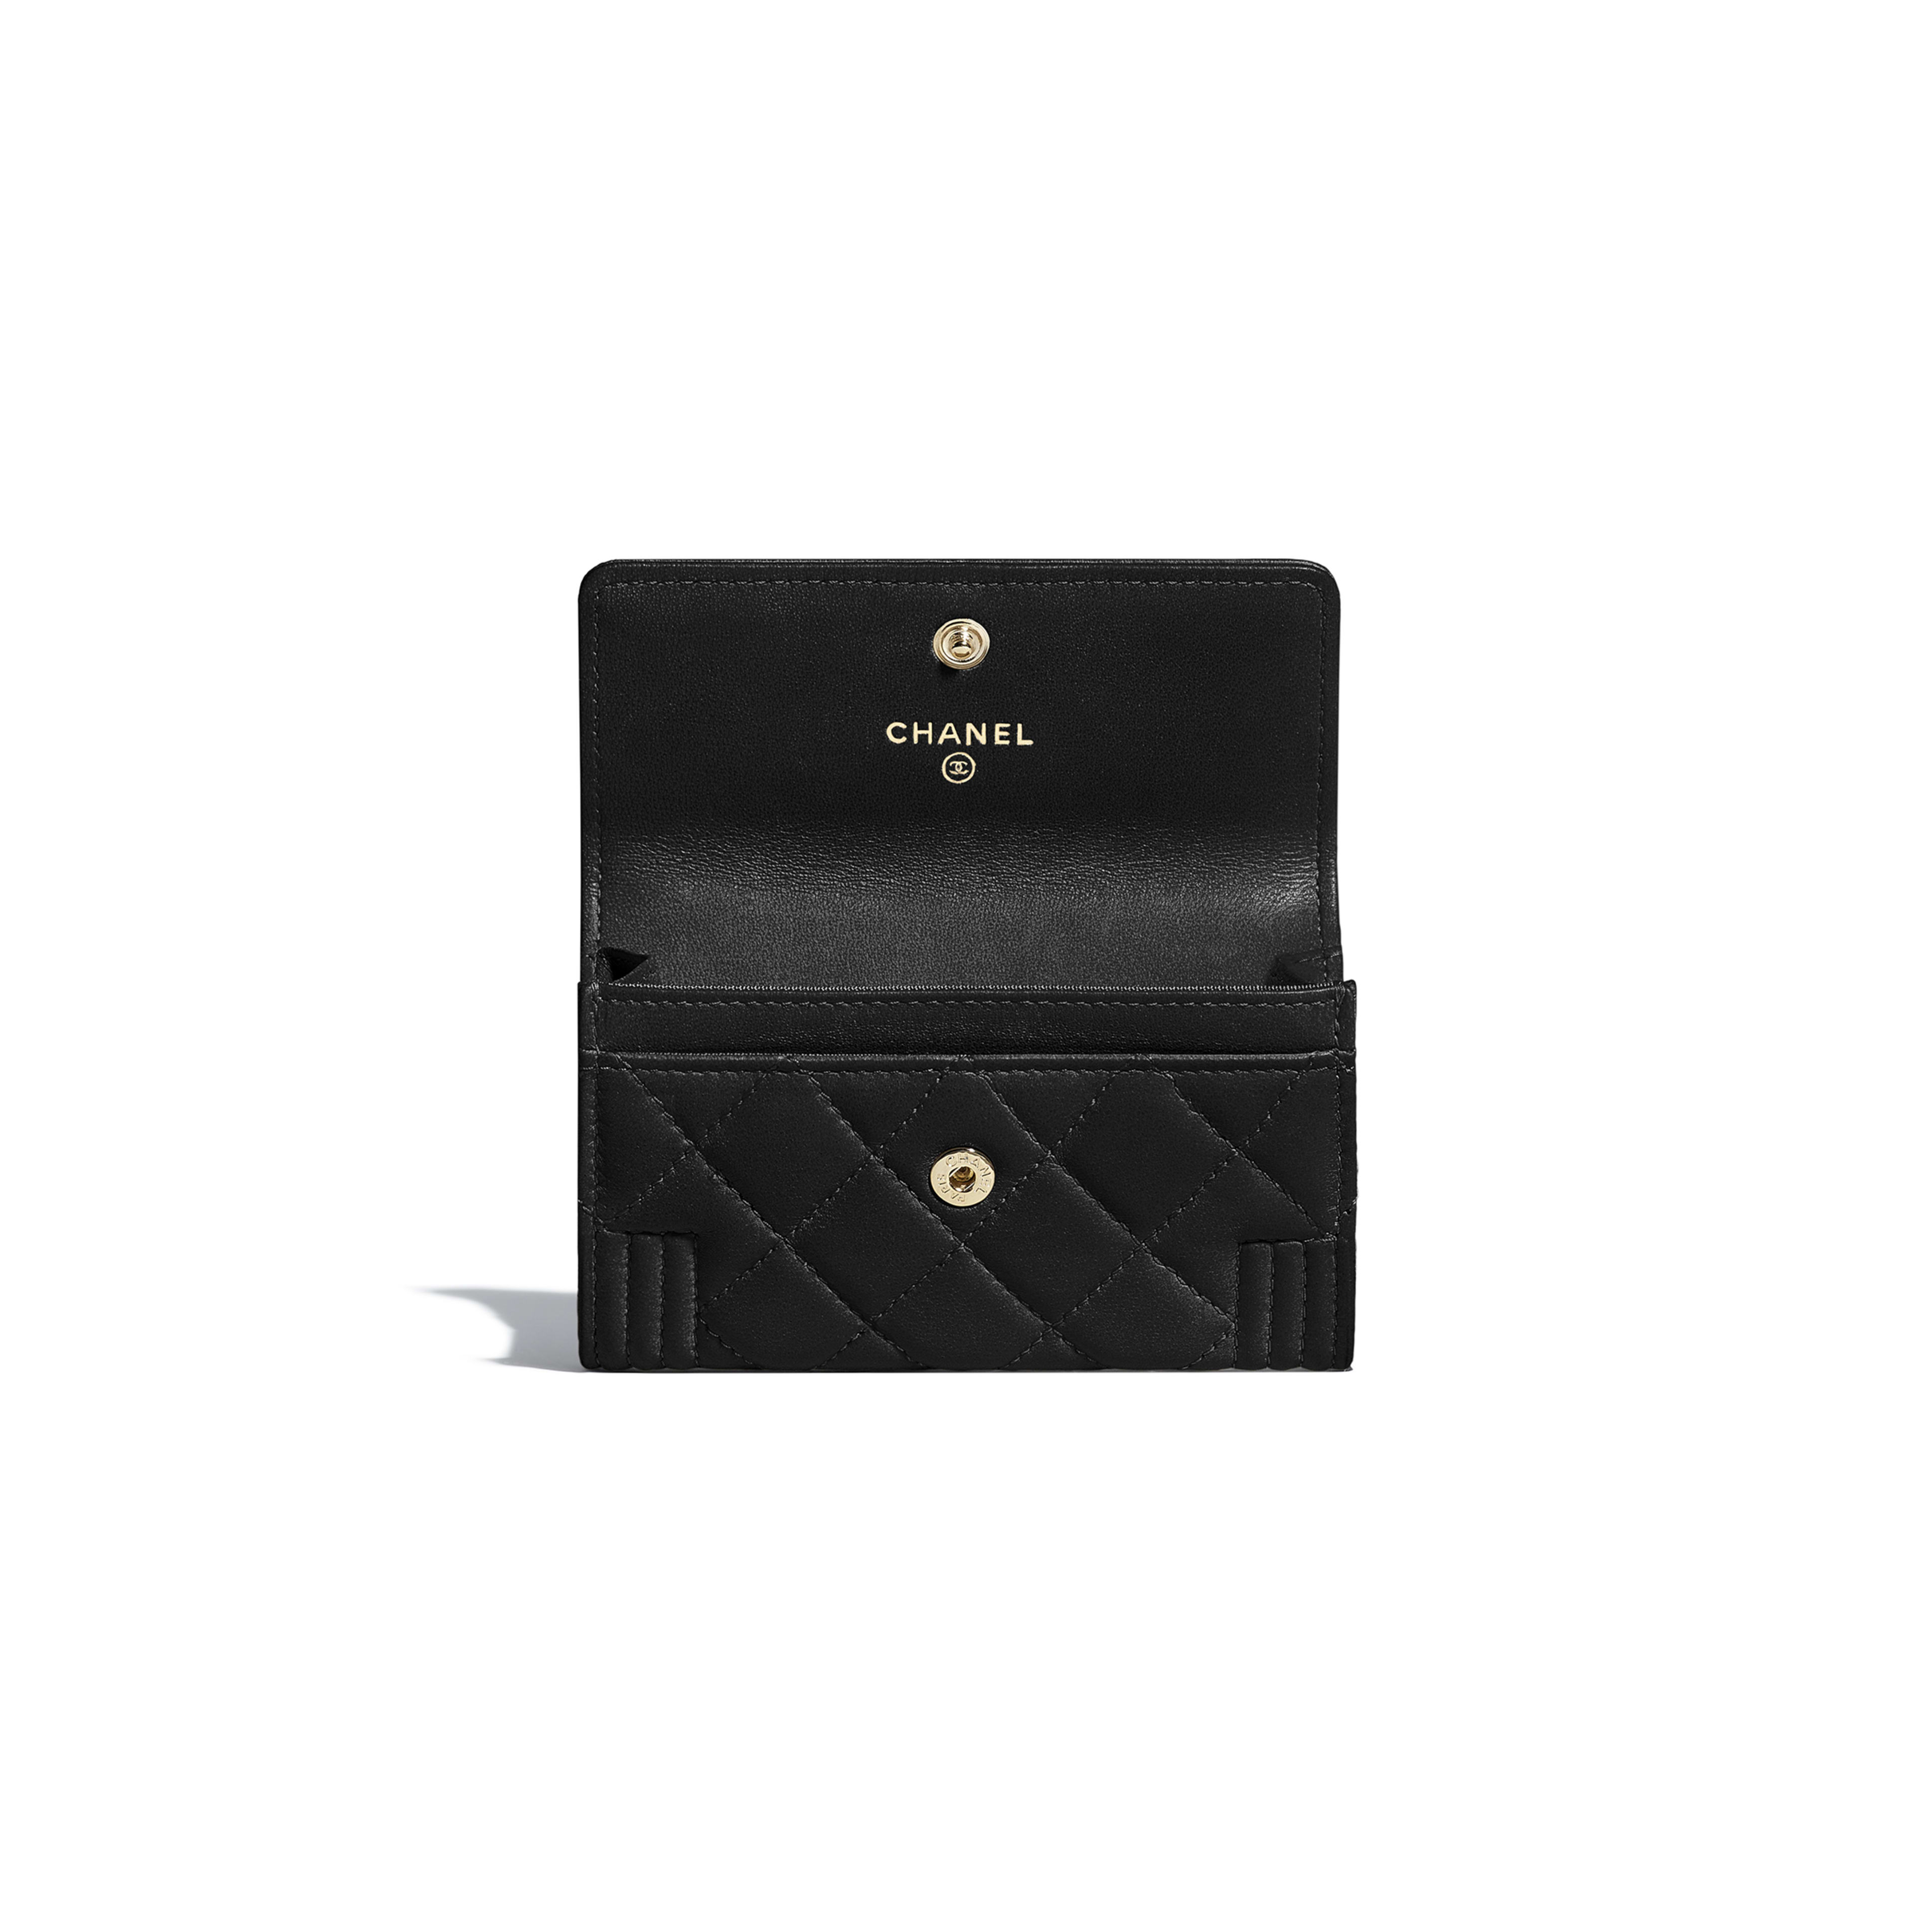 BOY CHANEL Flap Card Holder - Black - Lambskin - Other view - see full sized version